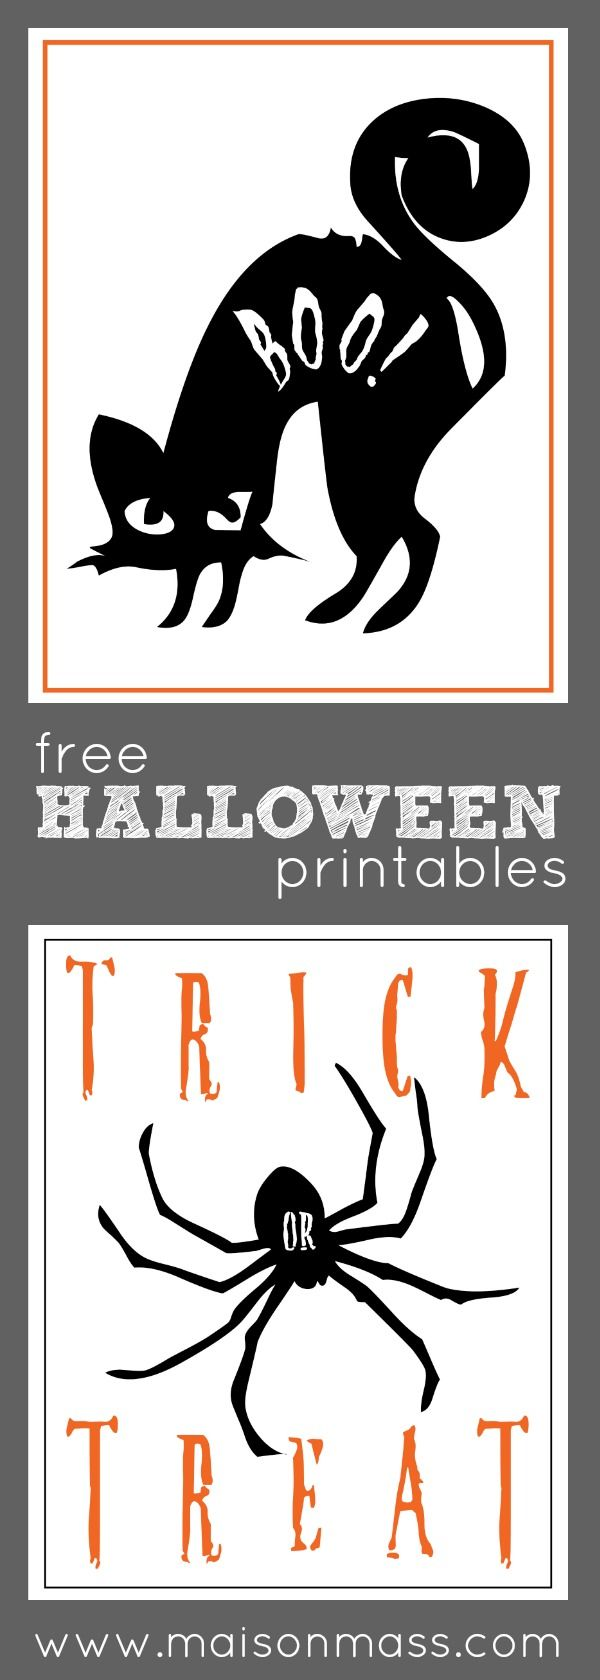 free halloween decoration printables the 25 best printable halloween decorations ideas on pinterest